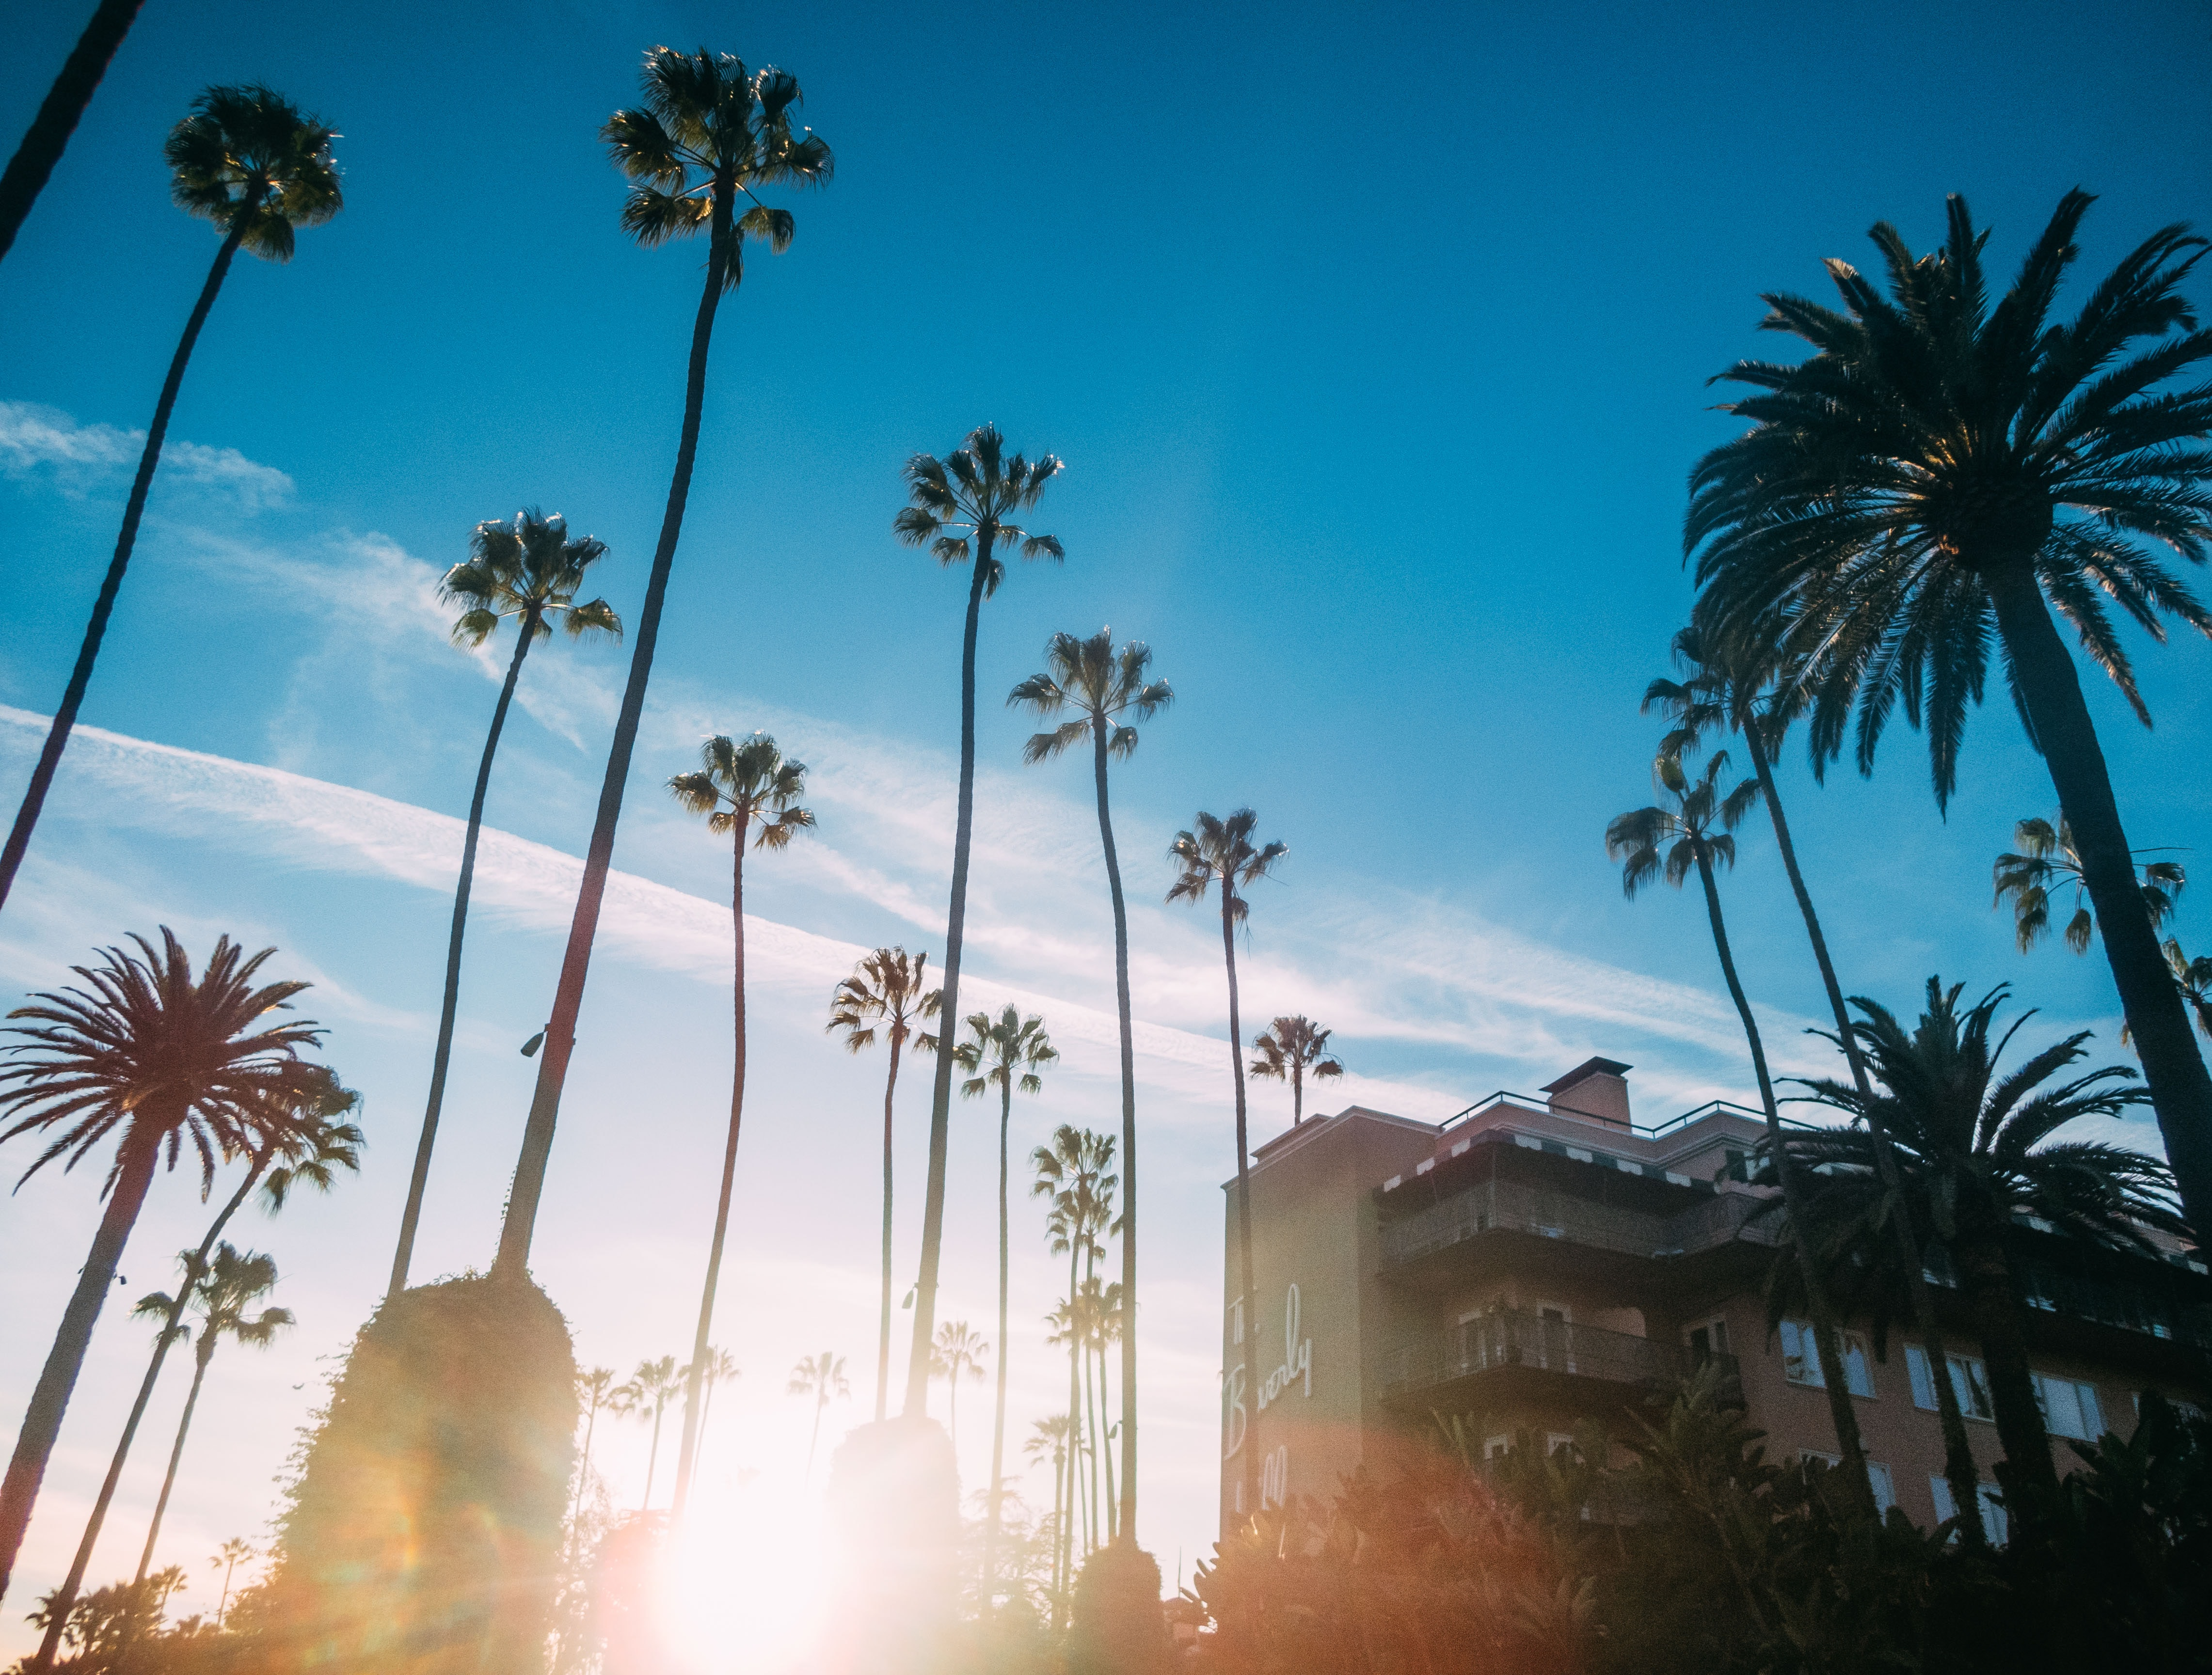 low-angle photo of palm trees